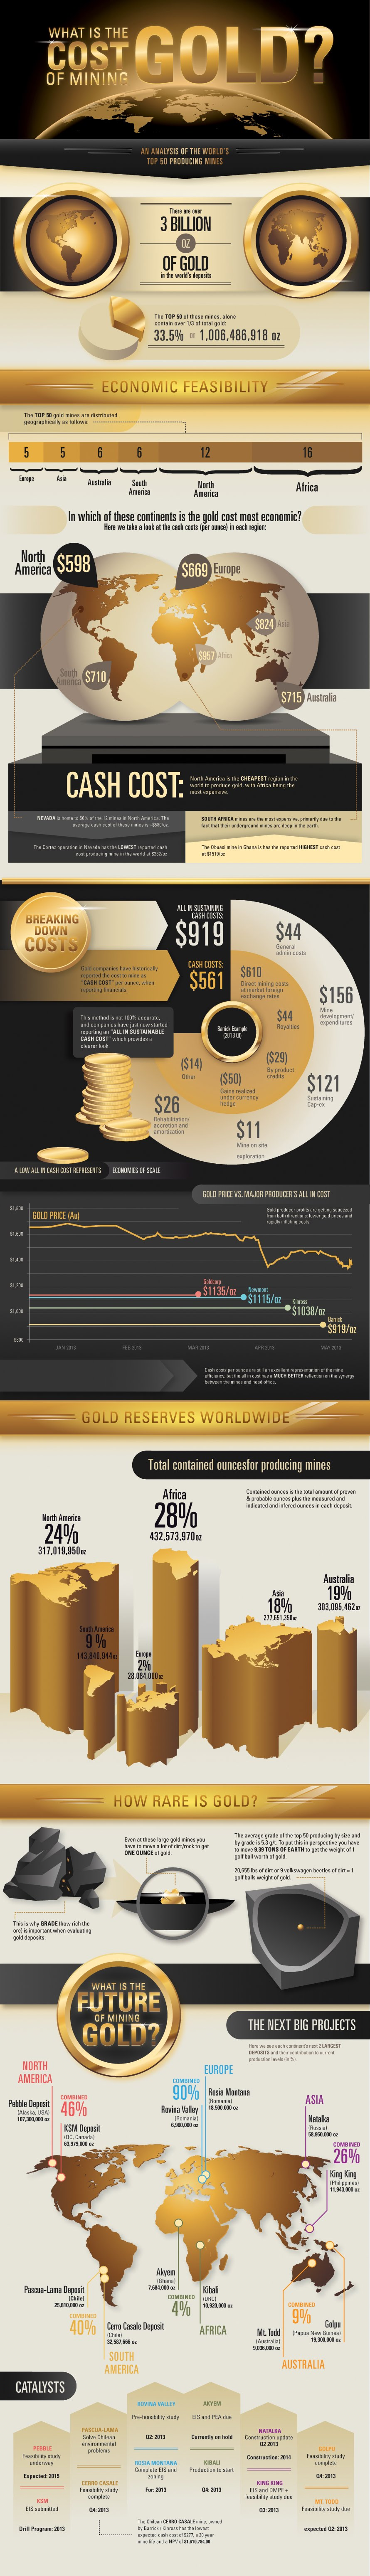 https://www.gold.org/about-gold/gold-supply/how-gold-is-mined